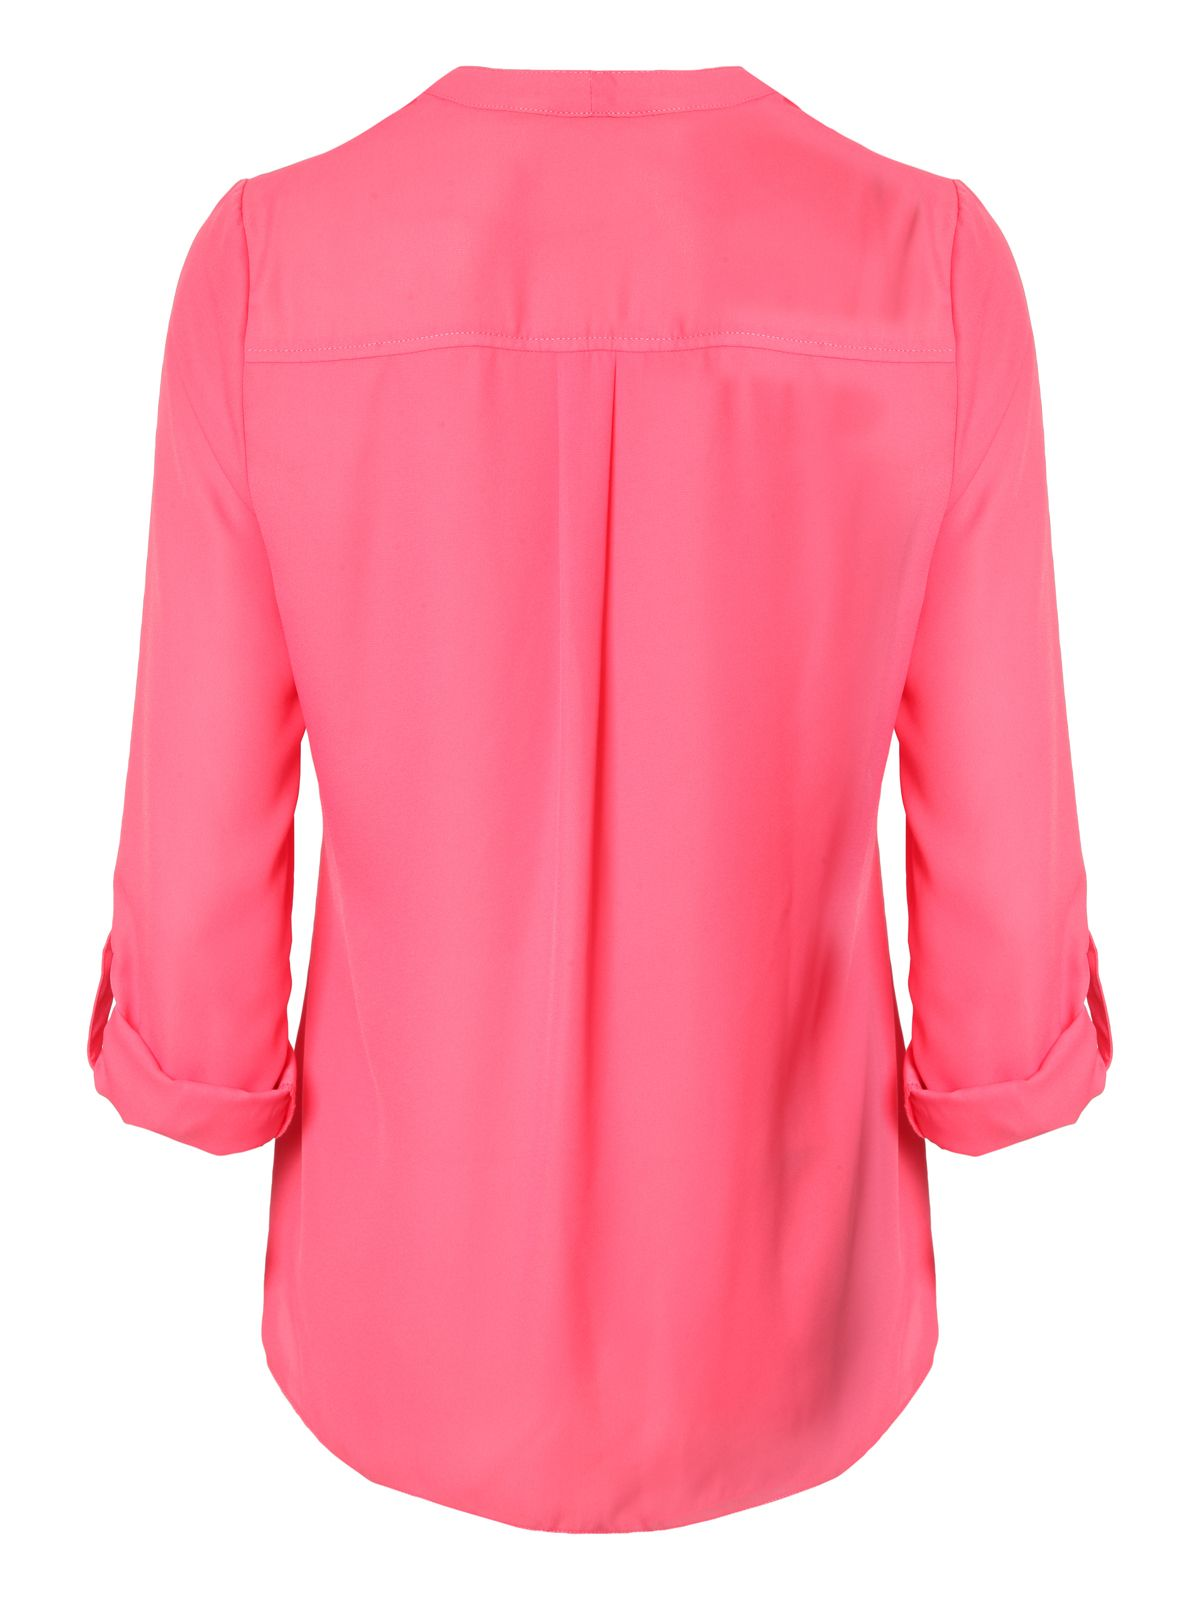 Zip Pocket Blouse